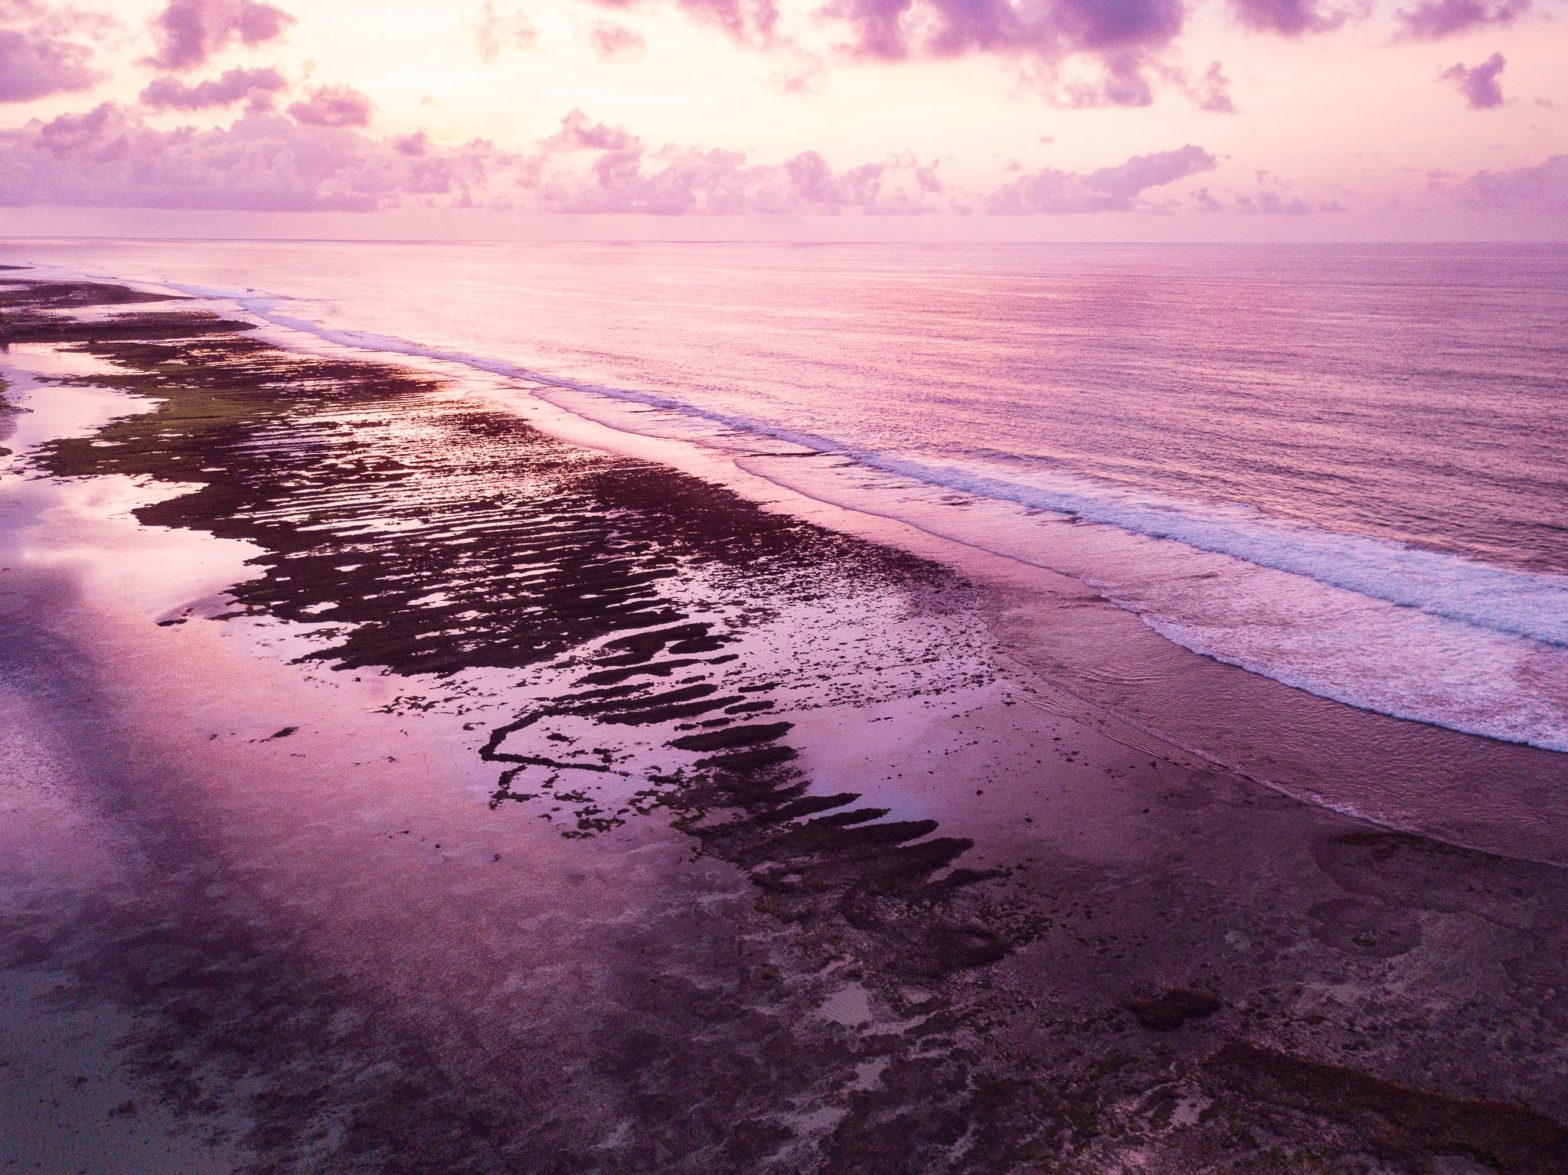 Aerial view of a coastal reef bathed in pink light just before sunrise